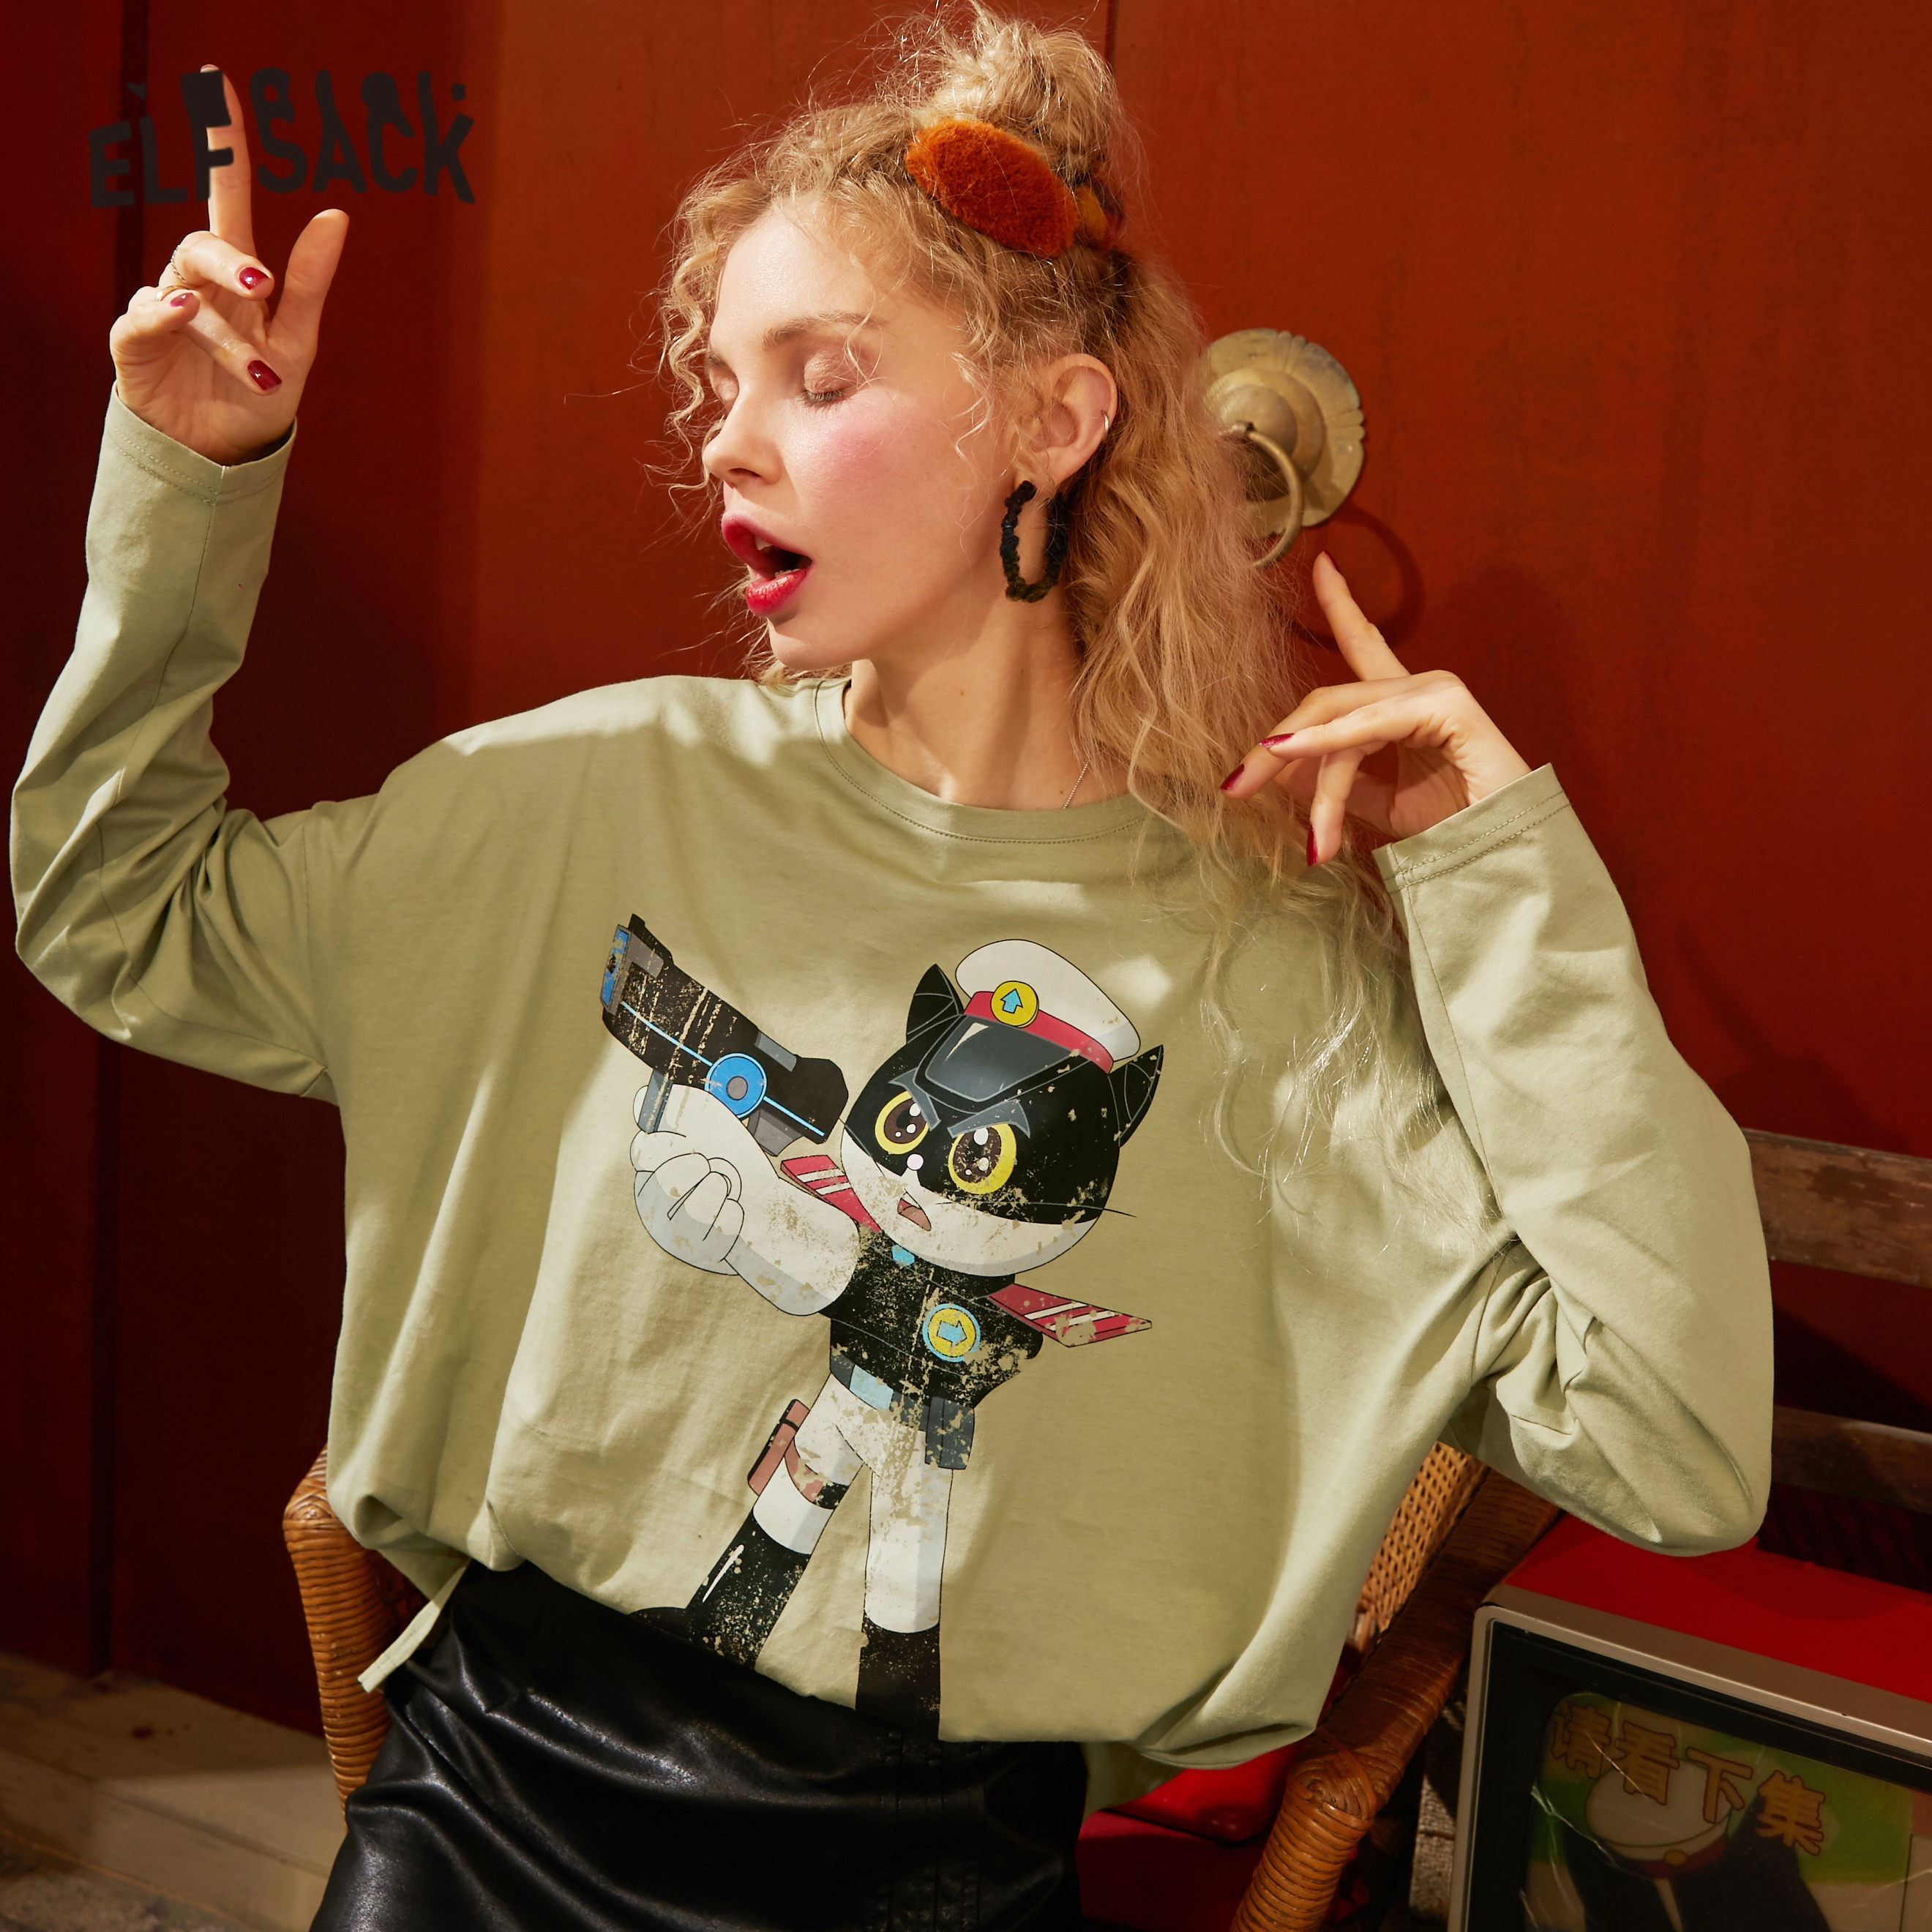 ELFSACK Orange Solid Cartoon Print Loose Casual T Shirt Women 2020 Spring New Gray Long Sleeve Korean Style Ladies Daily Tops